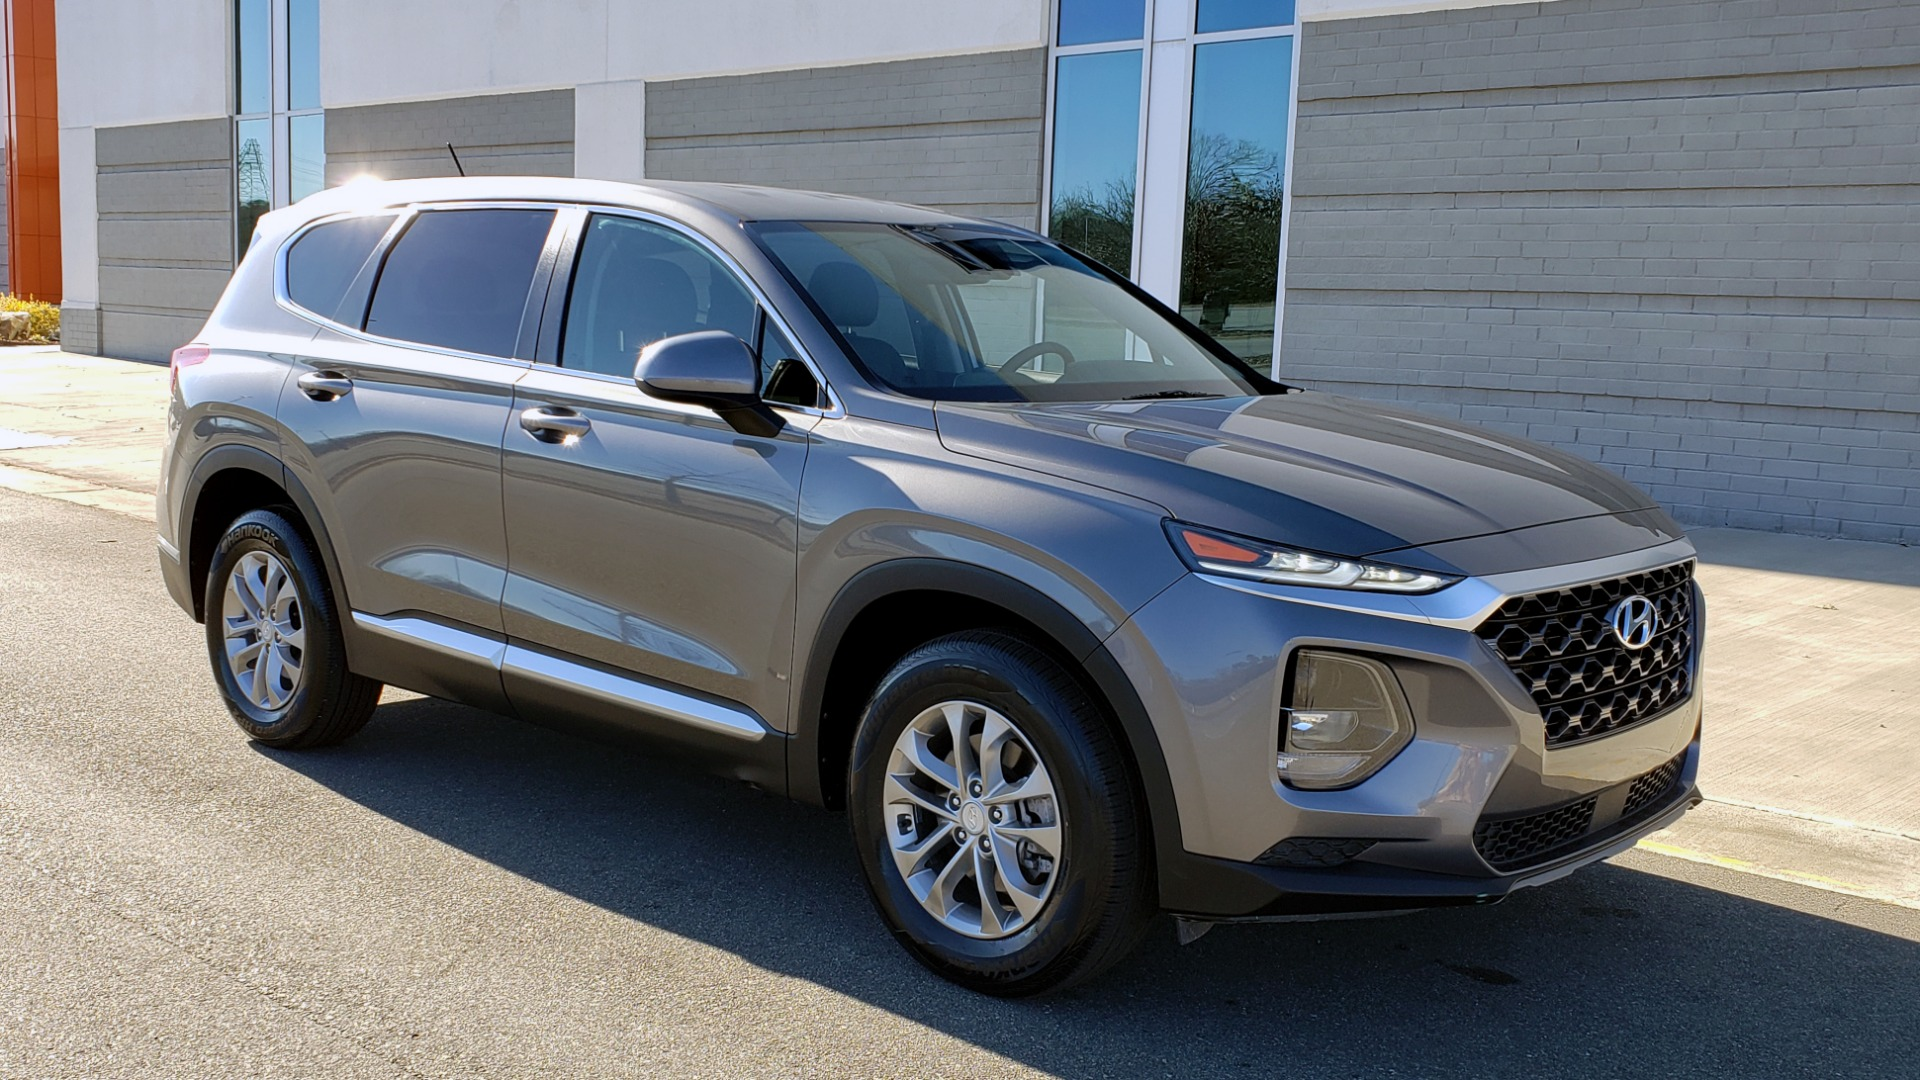 Used 2019 Hyundai SANTA FE SE / 2.4L 4-CYL / 8-SPD AUTO / BLIND SPOT / LANE KEEP ASSIST for sale Sold at Formula Imports in Charlotte NC 28227 5